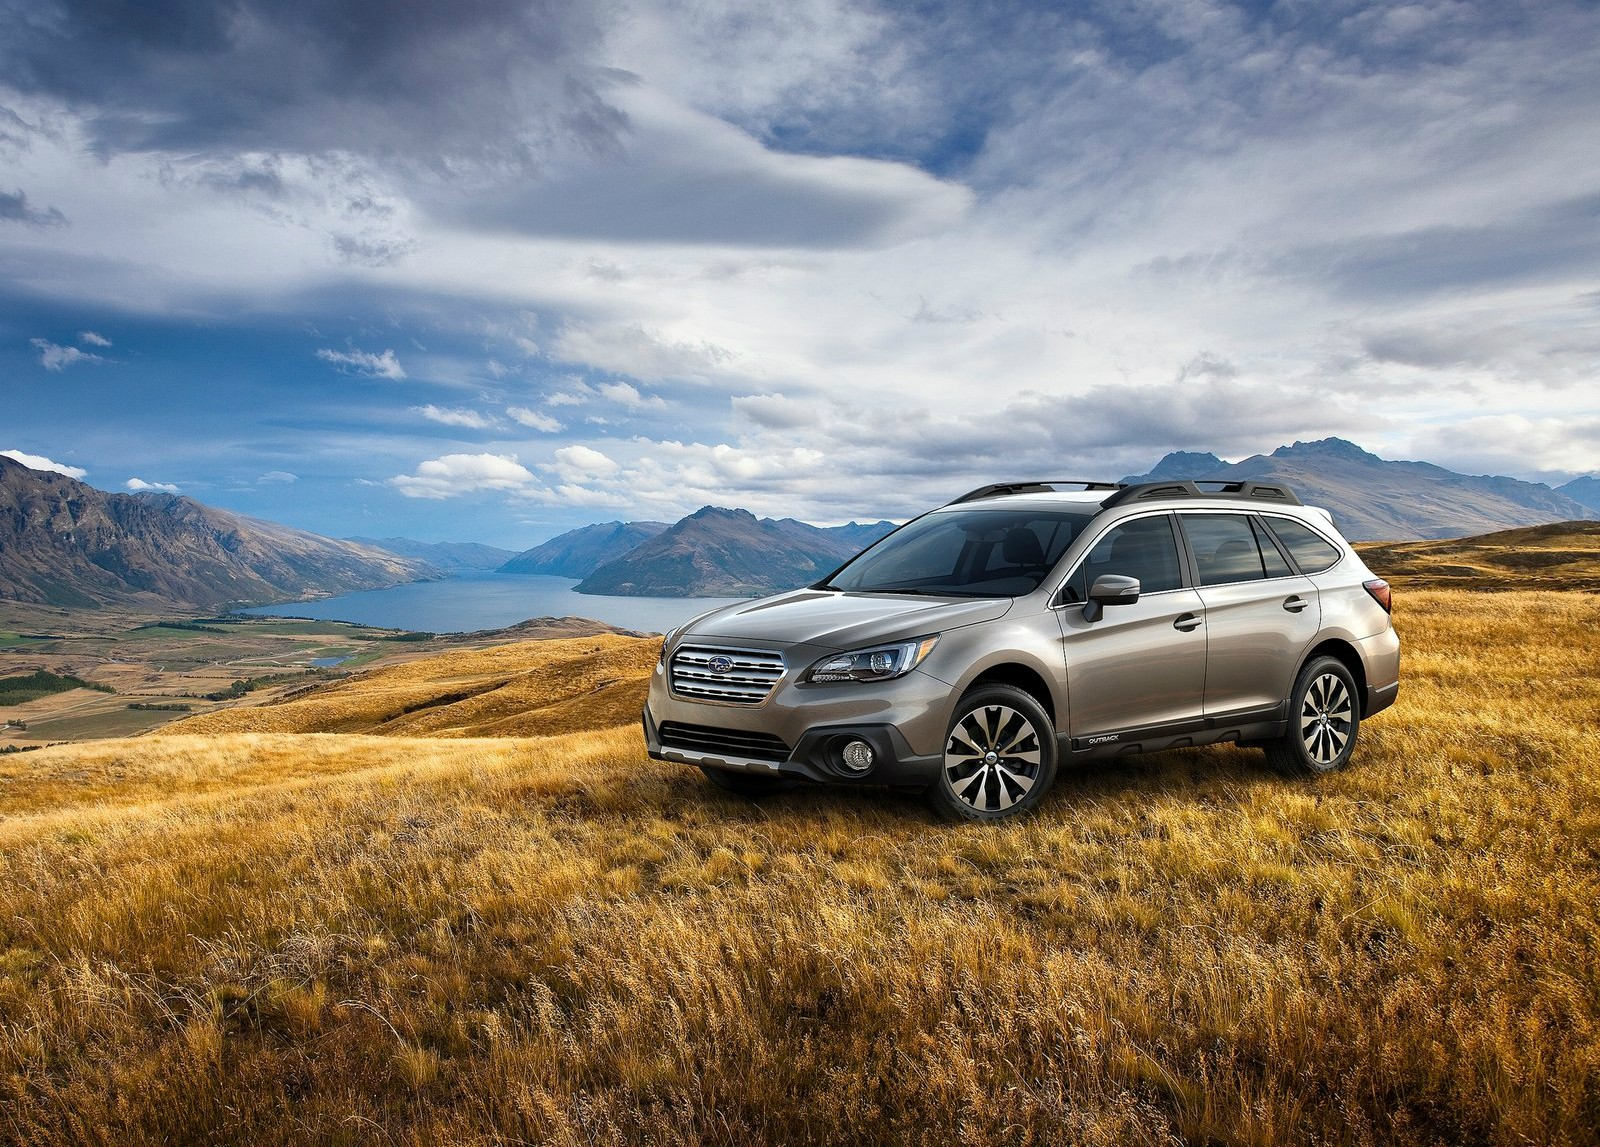 2015 subaru outback pricing announced for the uk autoevolution. Black Bedroom Furniture Sets. Home Design Ideas